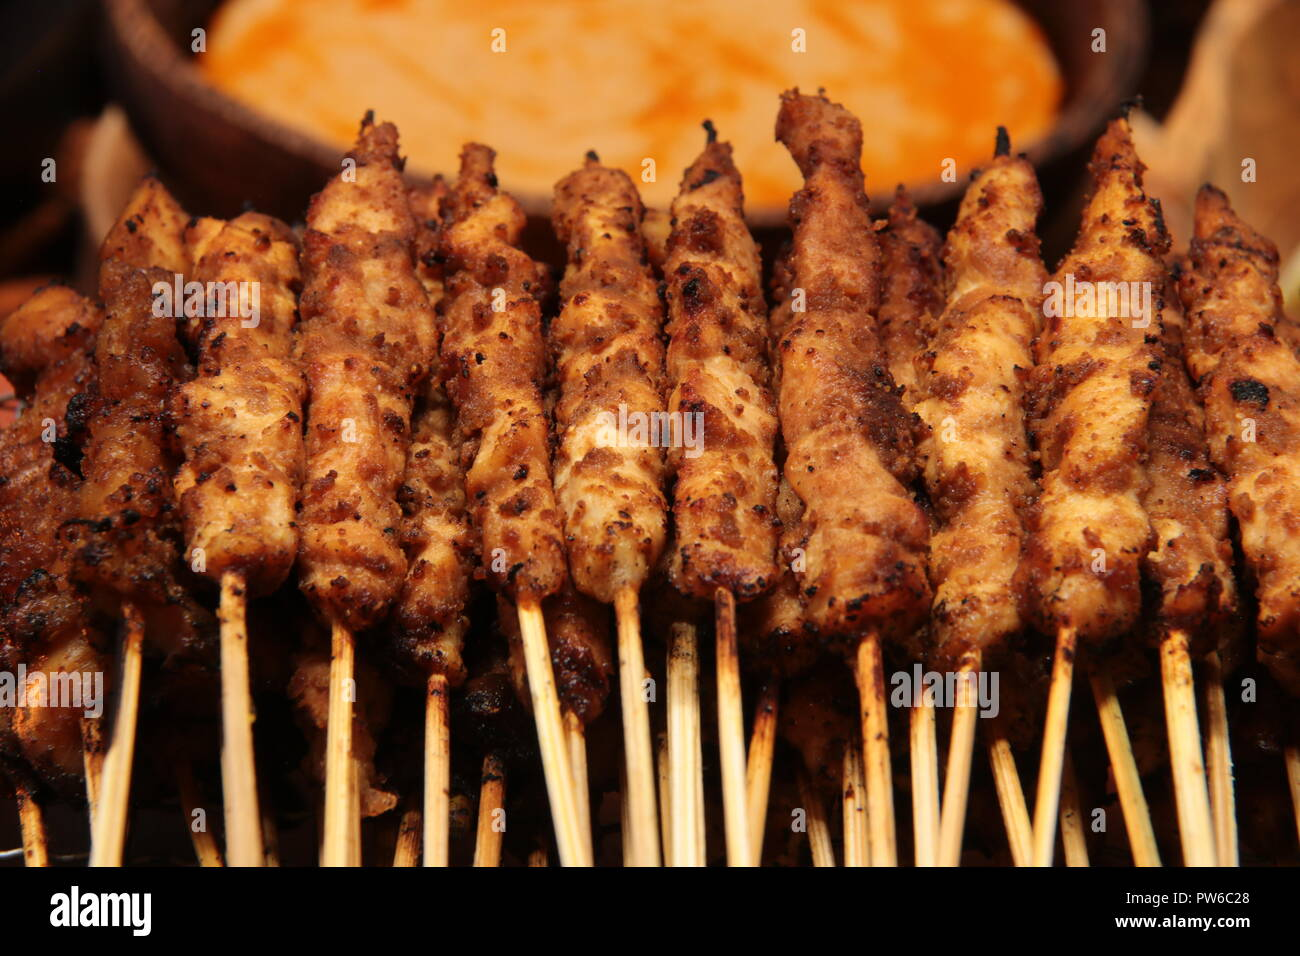 Sate Ayam Blora, the signature chicken satay from Blora regency in Central Java, Indonesia - Stock Image